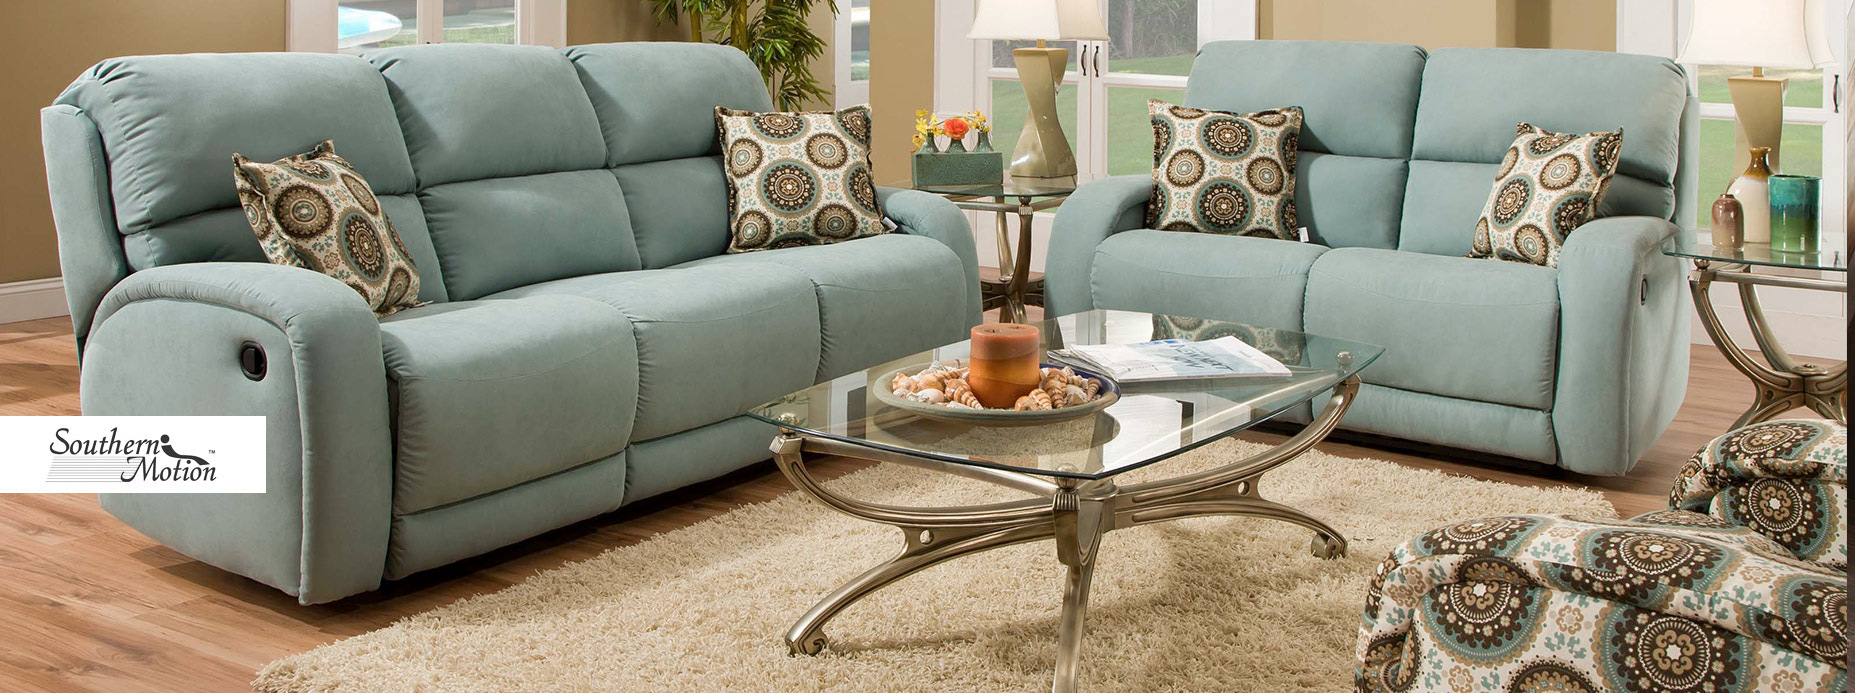 Southern Motion Furniture At Hickory Park Furniture Galleries